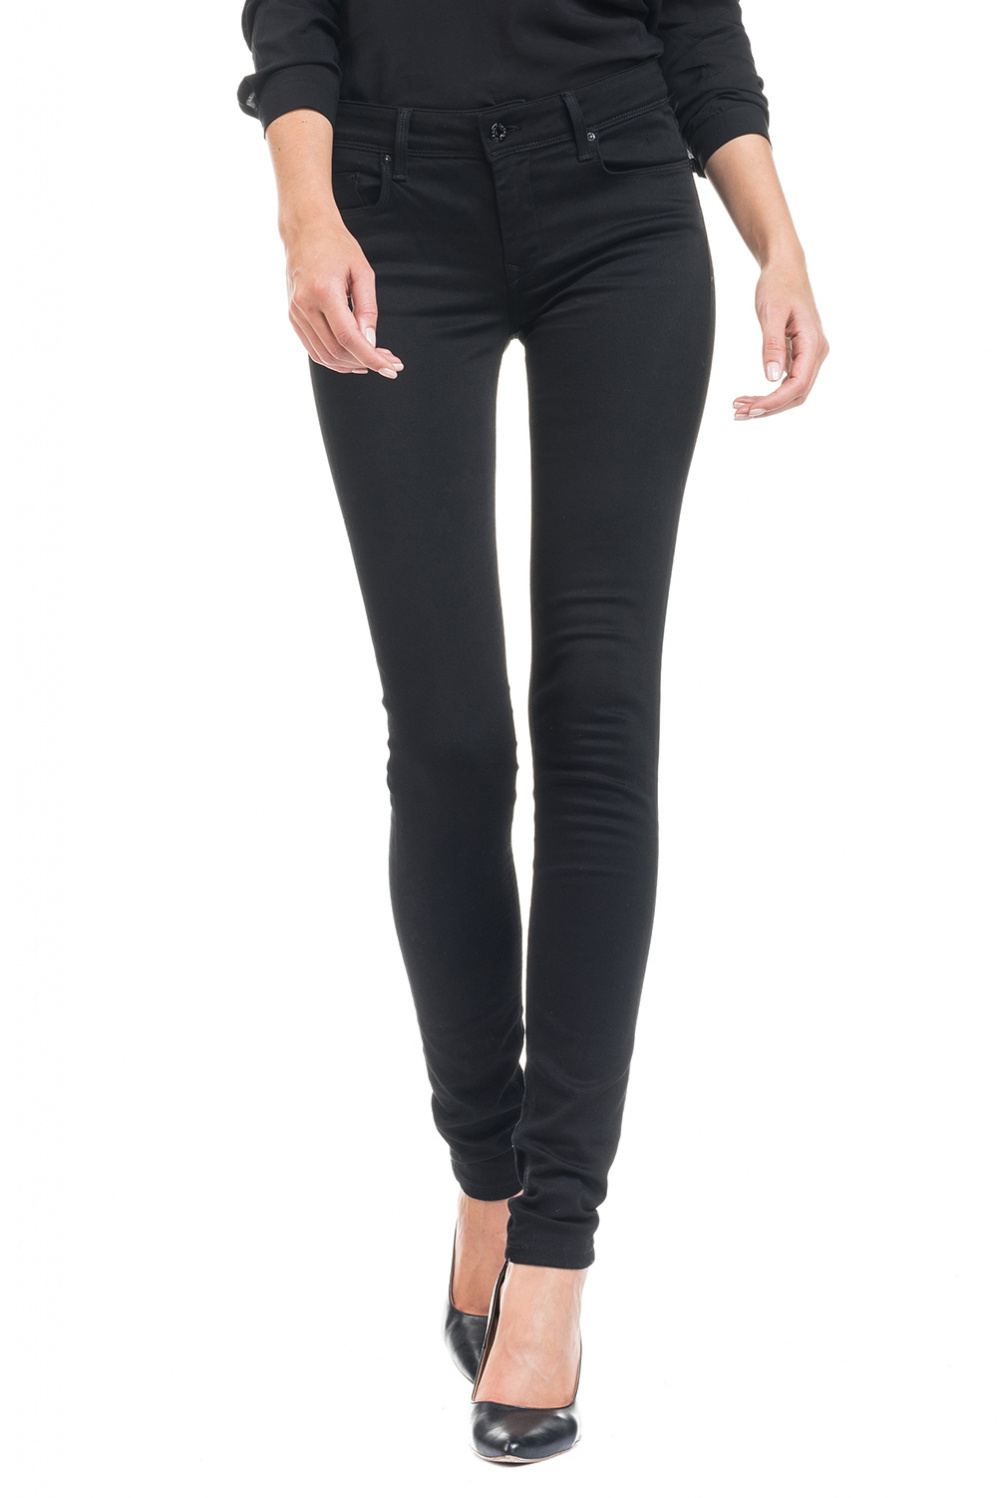 True Black Colette Jeans very slim leg